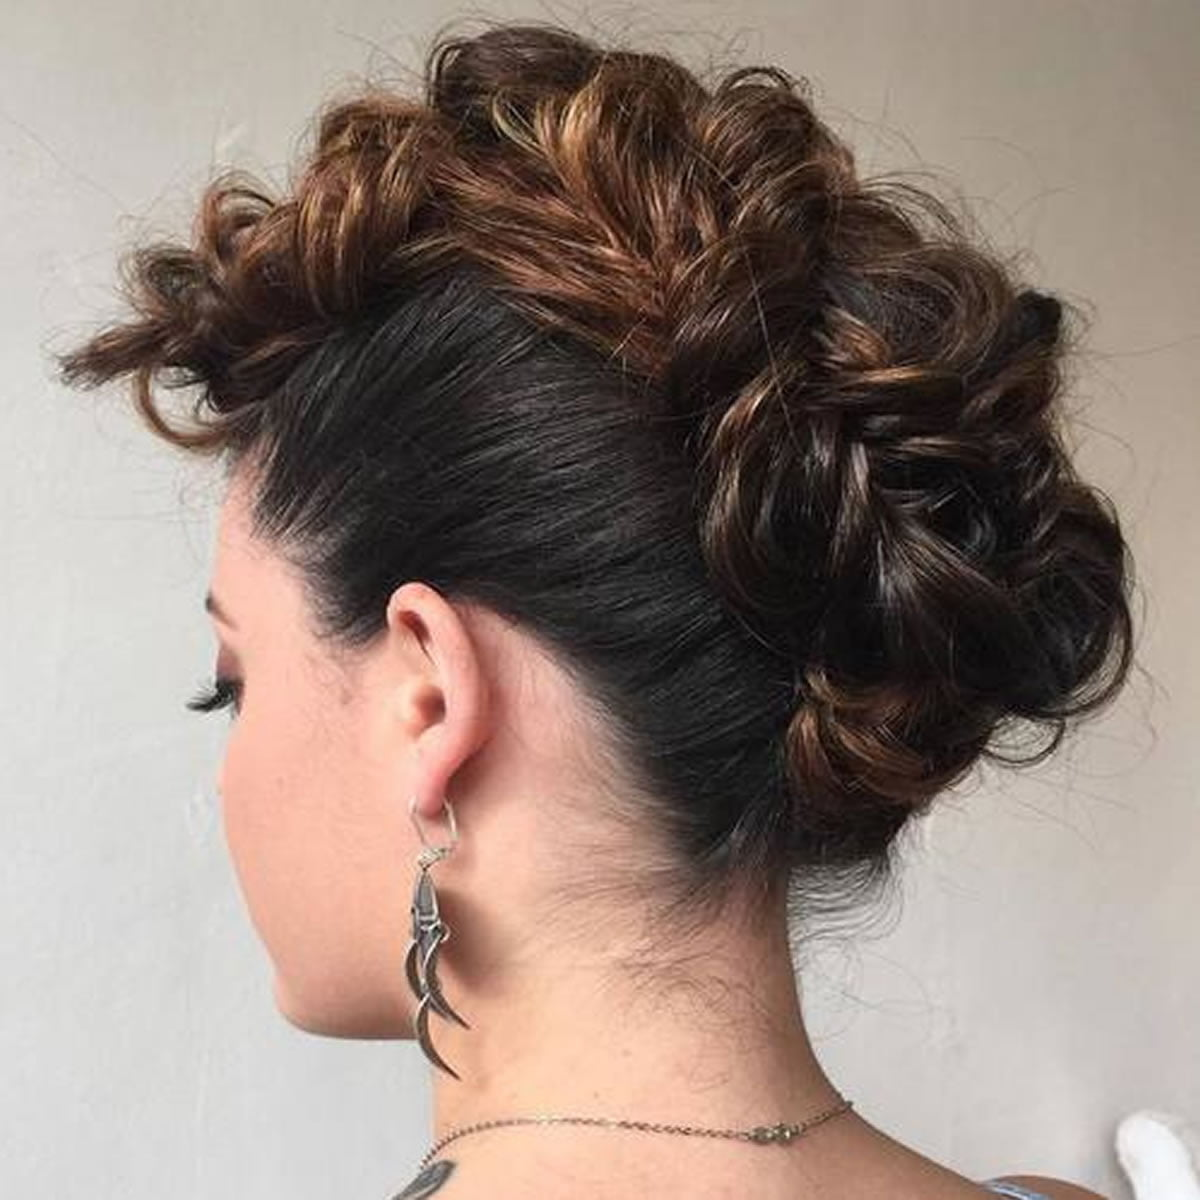 Girl Hairstyle Mohawk: 30 Glamorous Braided Mohawk Hairstyles For Girls And Women